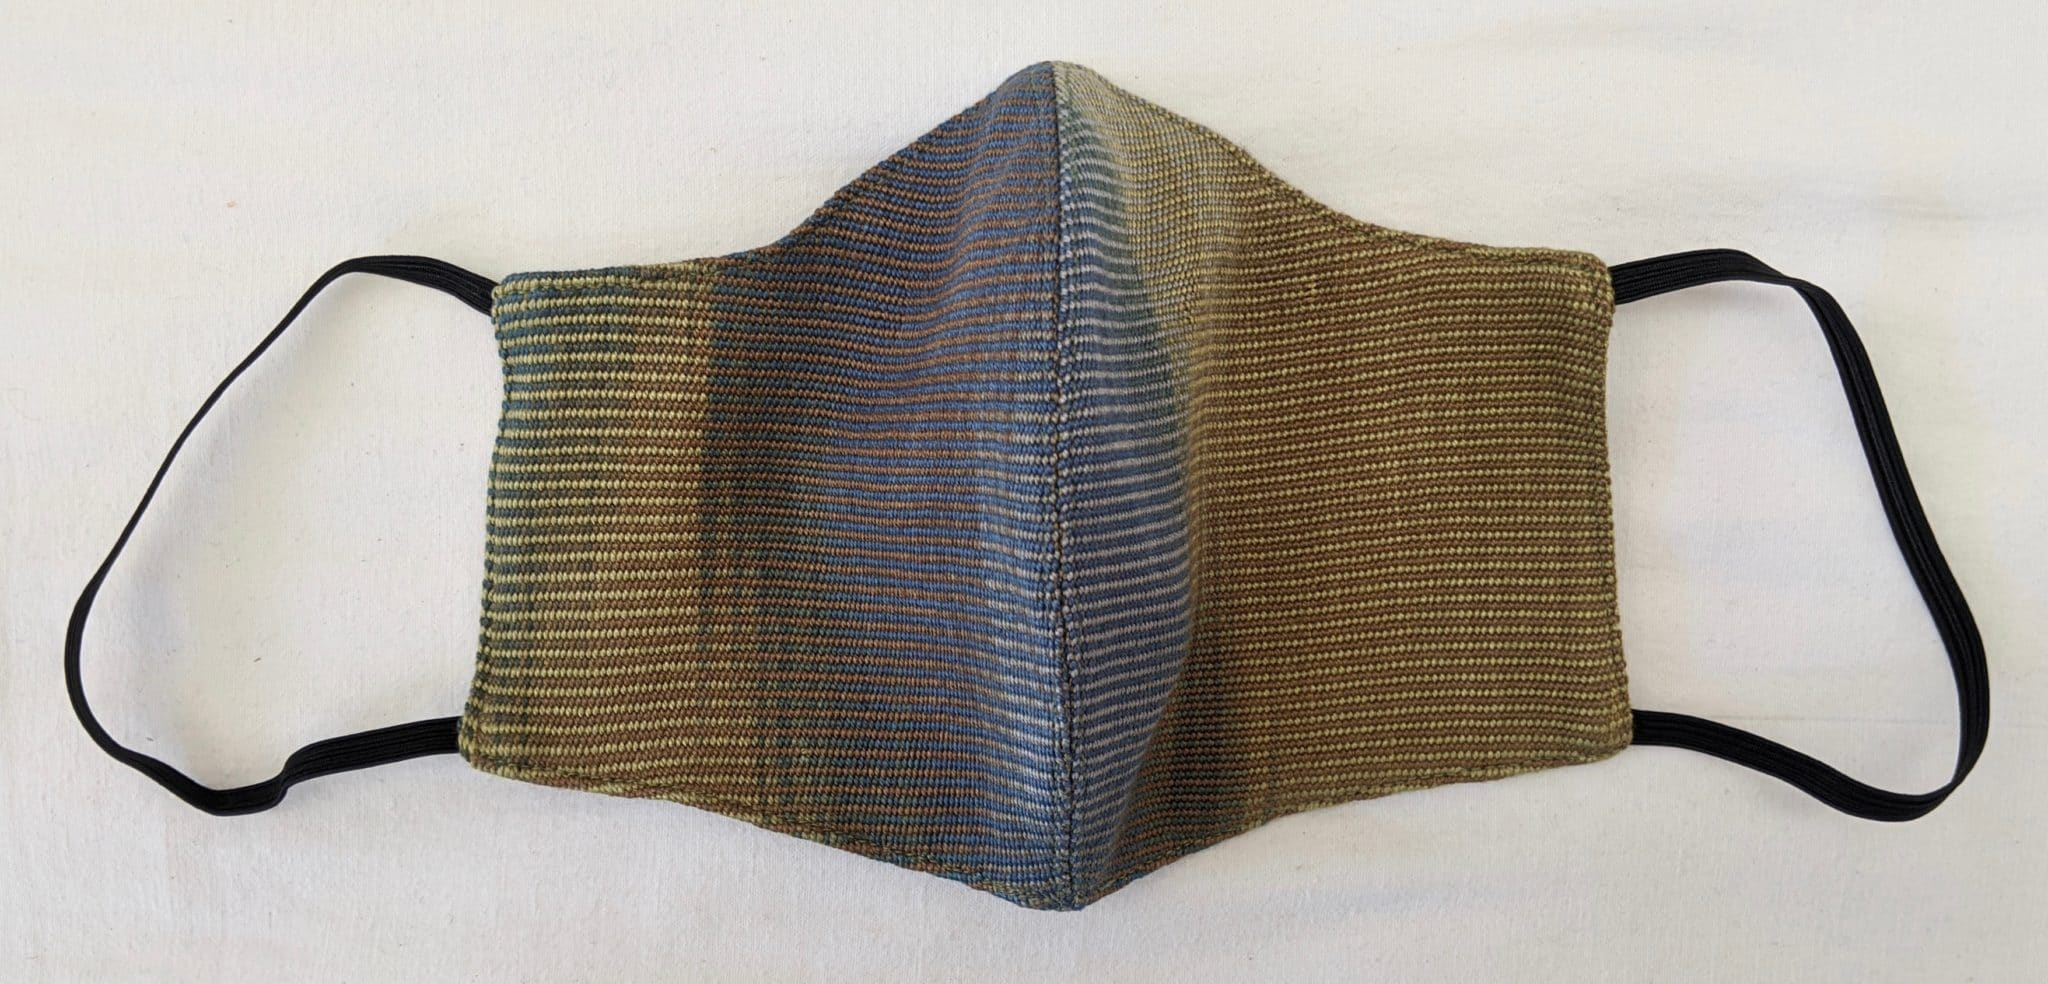 Handwoven Lightweight Bamboo Face Mask with Elastic Behind Ears - Blue, Olive, Gray, Brown